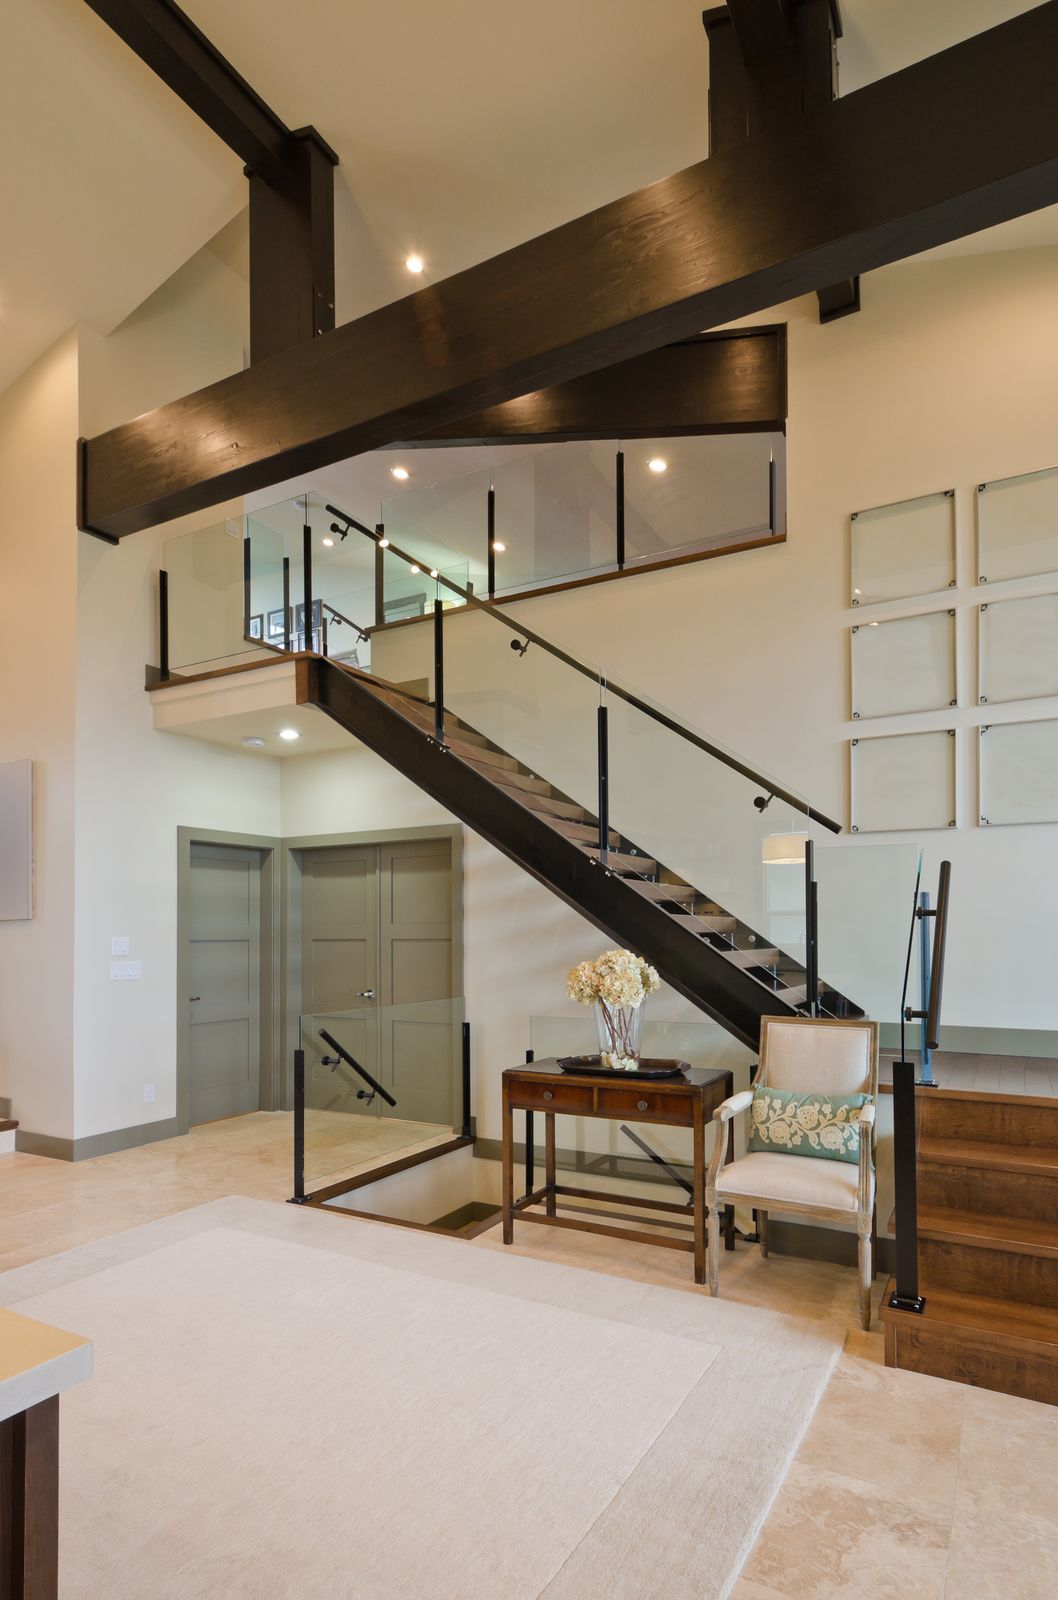 Fantastic Architecture for an Interior Home Staircase